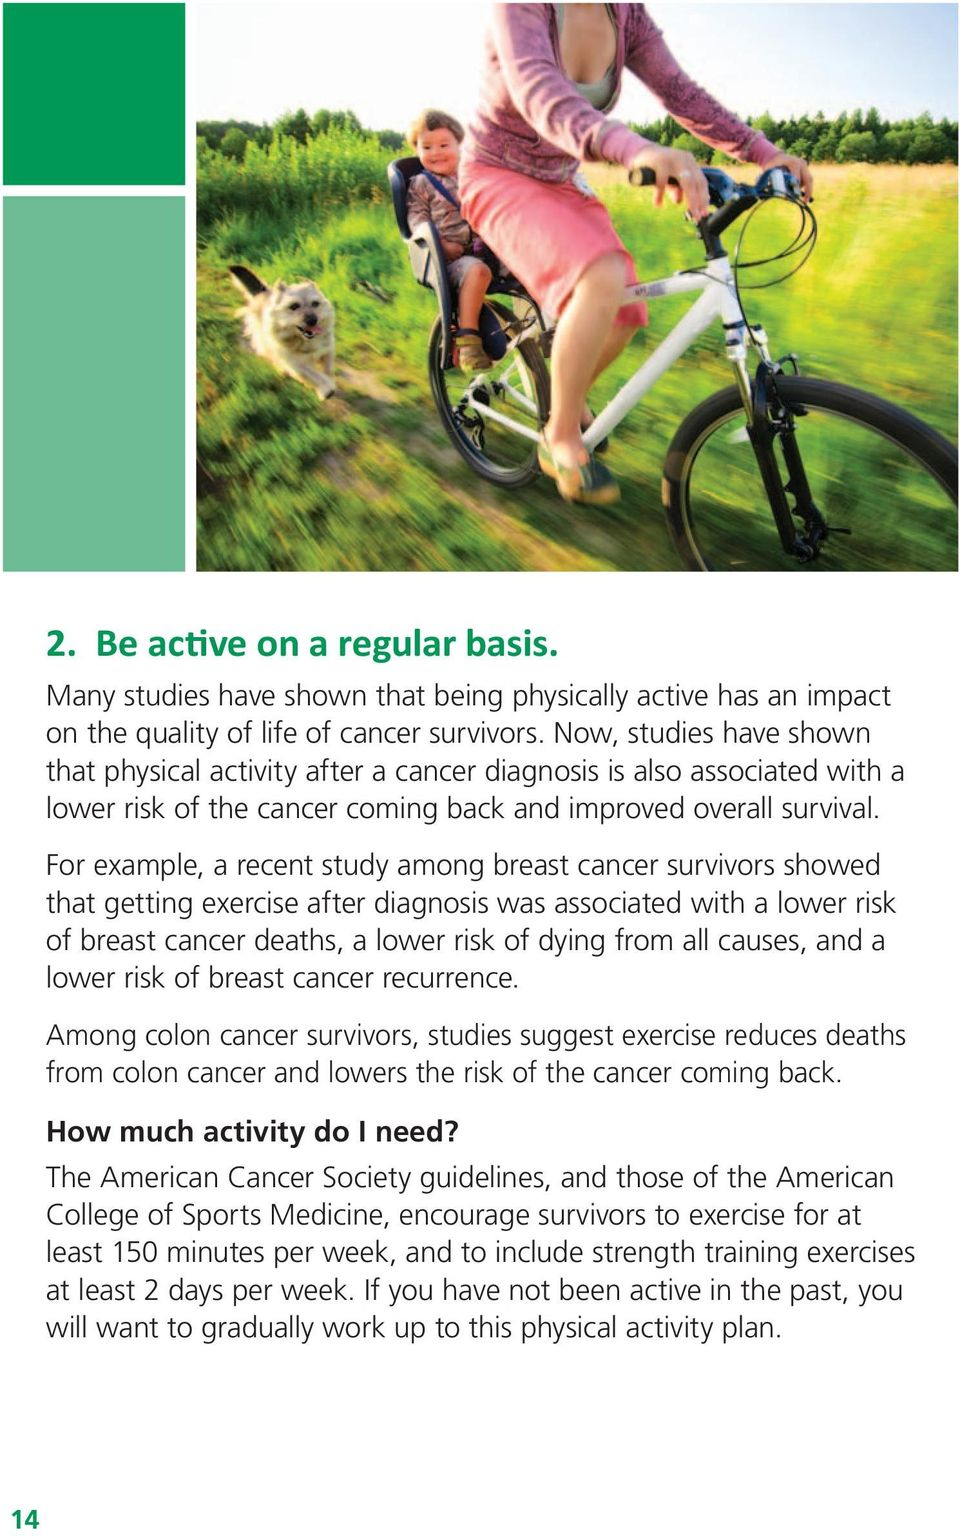 For example, a recent study among breast cancer survivors showed that getting exercise after diagnosis was associated with a lower risk of breast cancer deaths, a lower risk of dying from all causes,